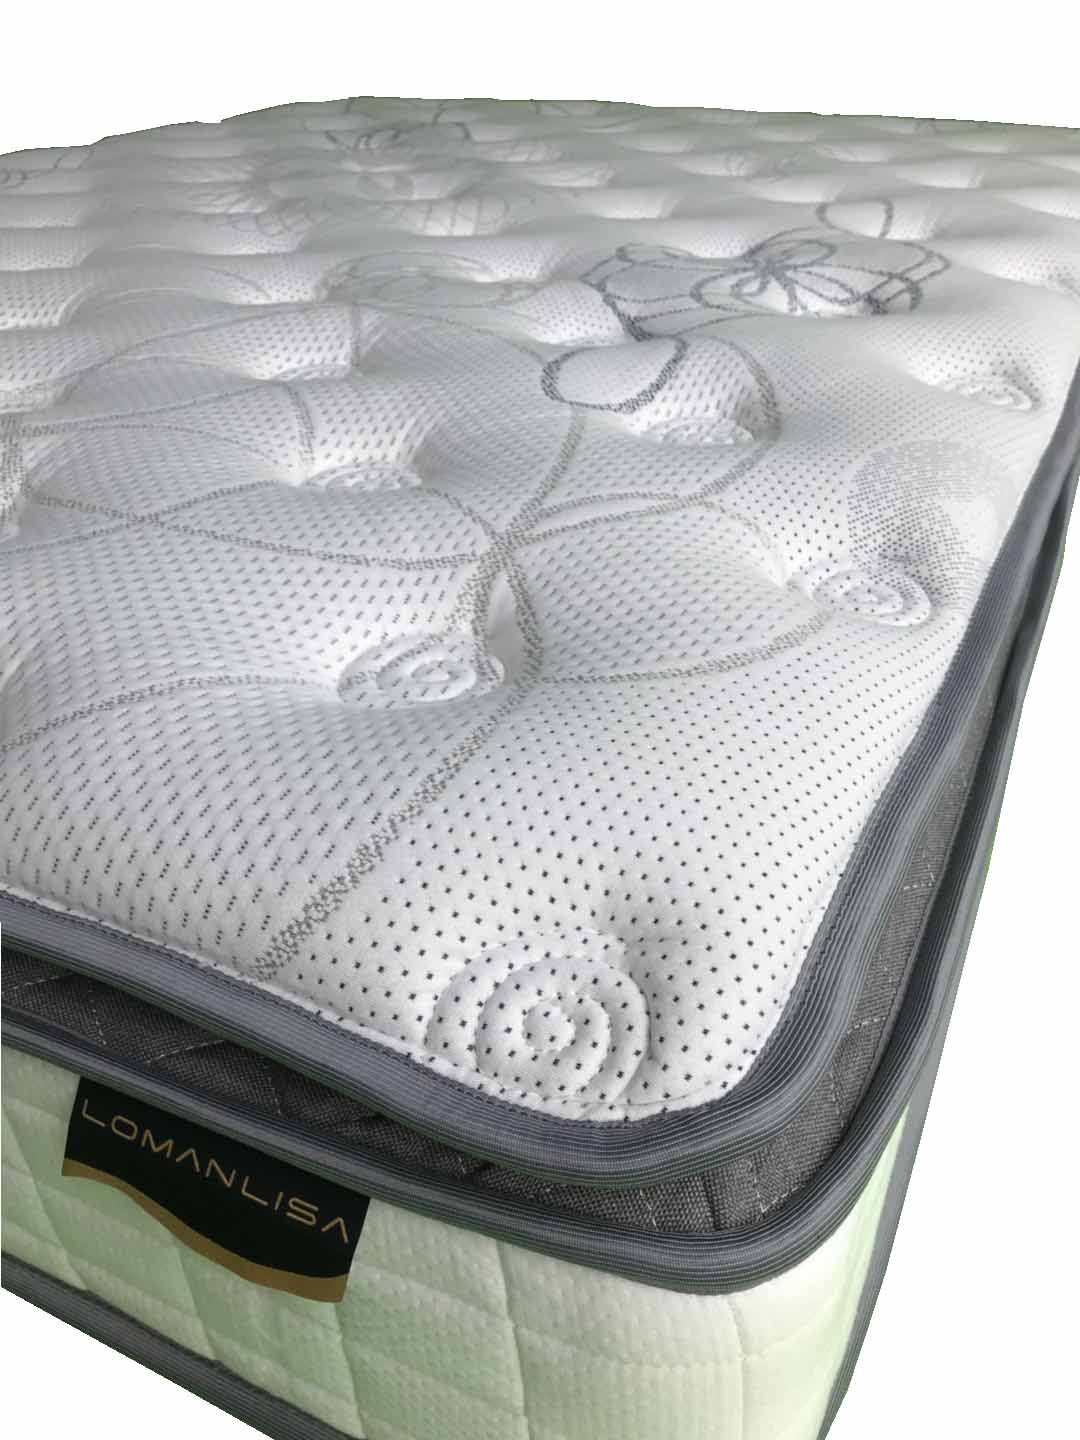 Posture Care Queen Size Pocket Spring  Mattress